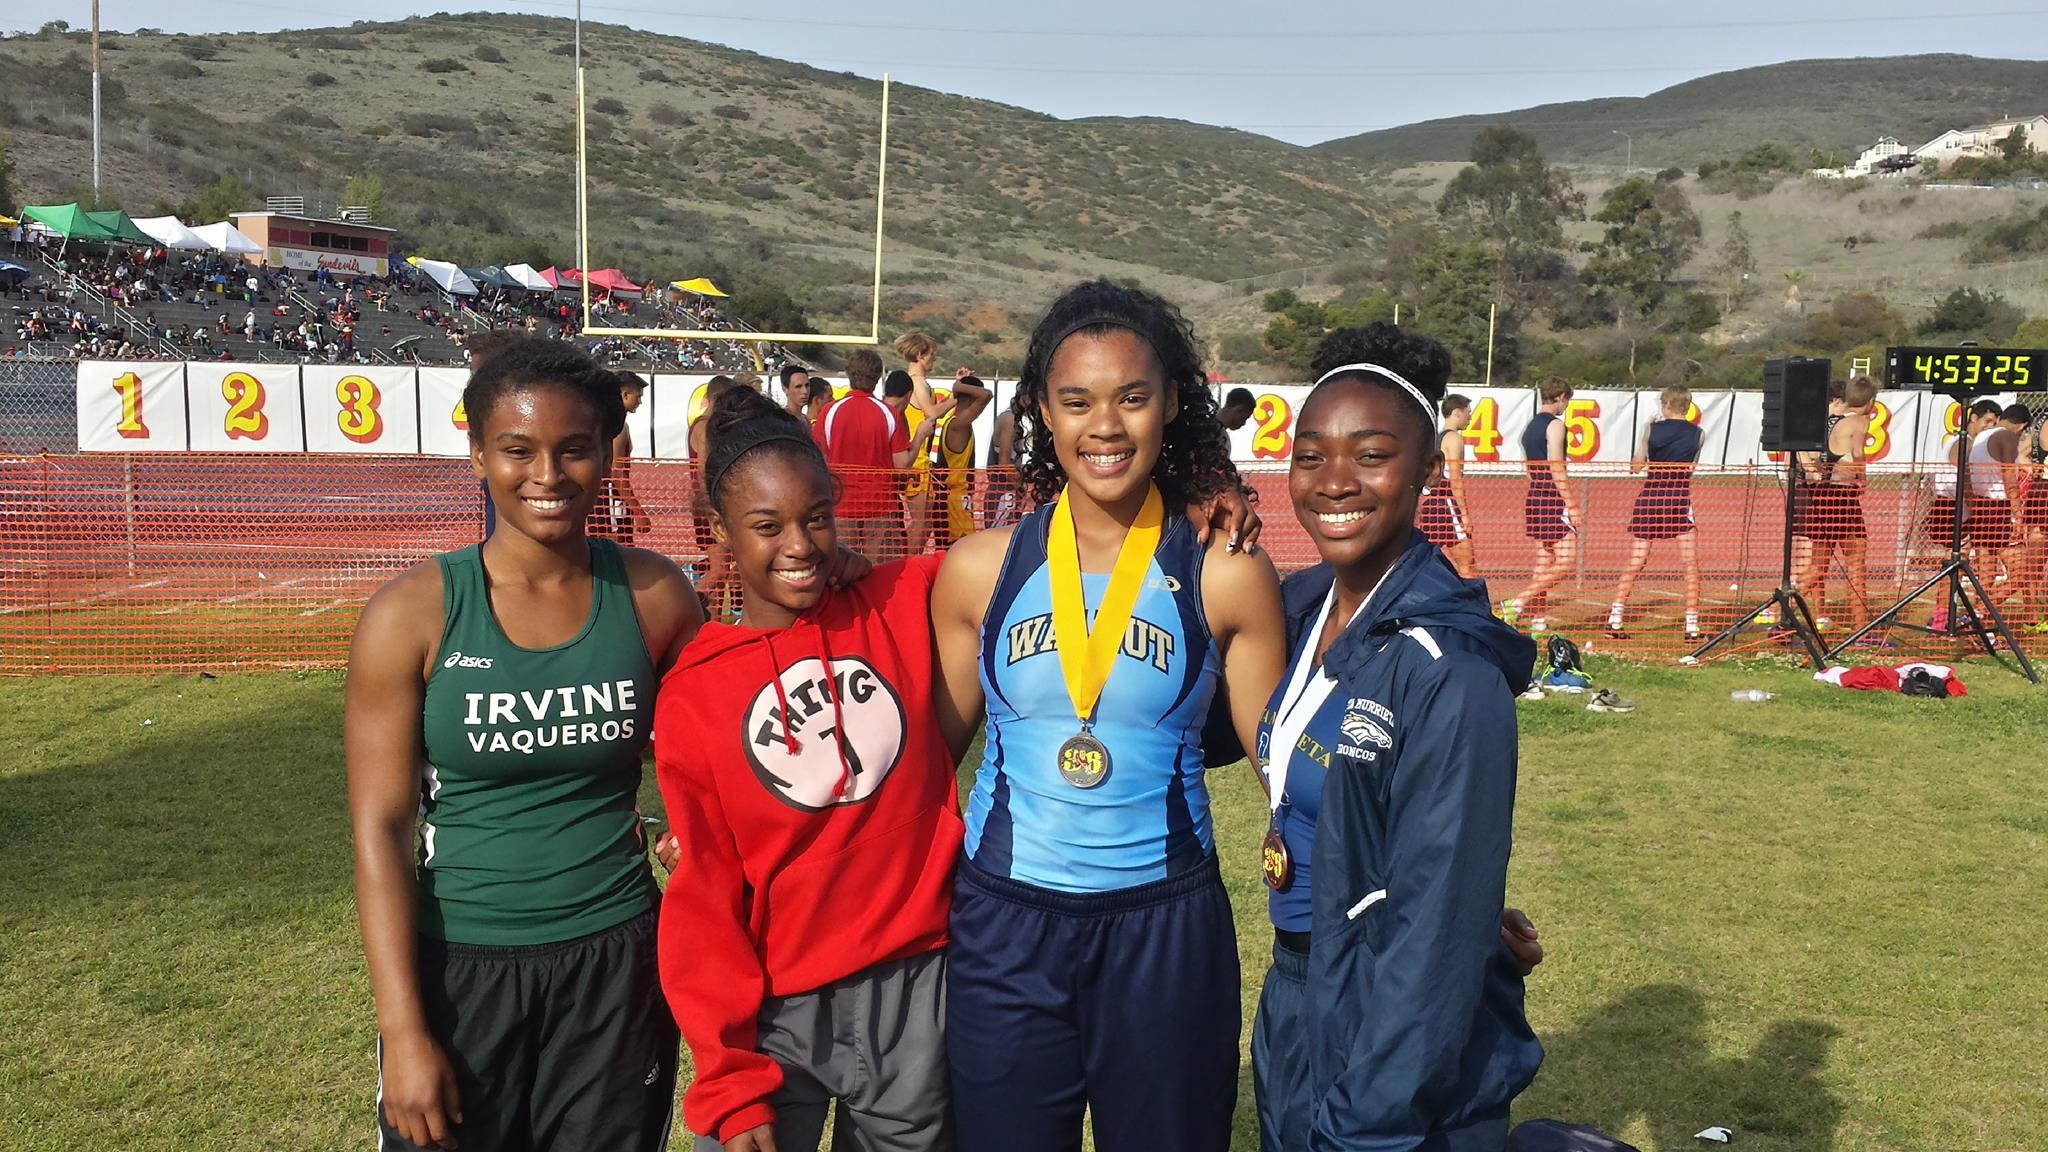 Kayla Richardson with medal around neck and team mates.